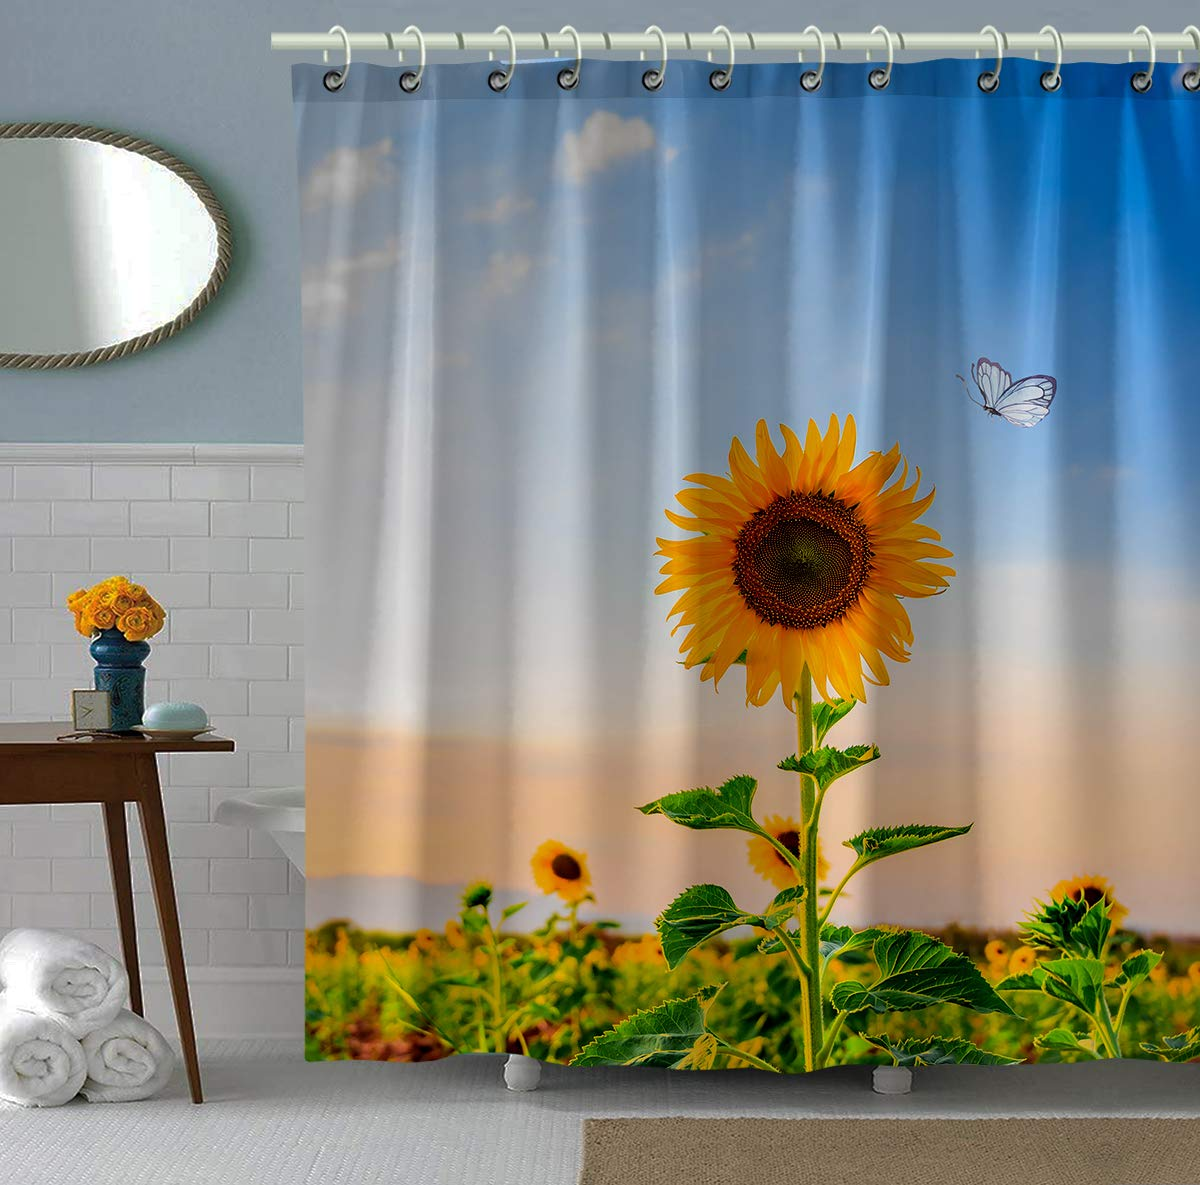 Bomehsoi Blue Sky Butterfly Sunshine Sunflower Shower Curtain 72x72 Inche with Hooks Curtain for Bathroom Waterproof Polyester Fabric